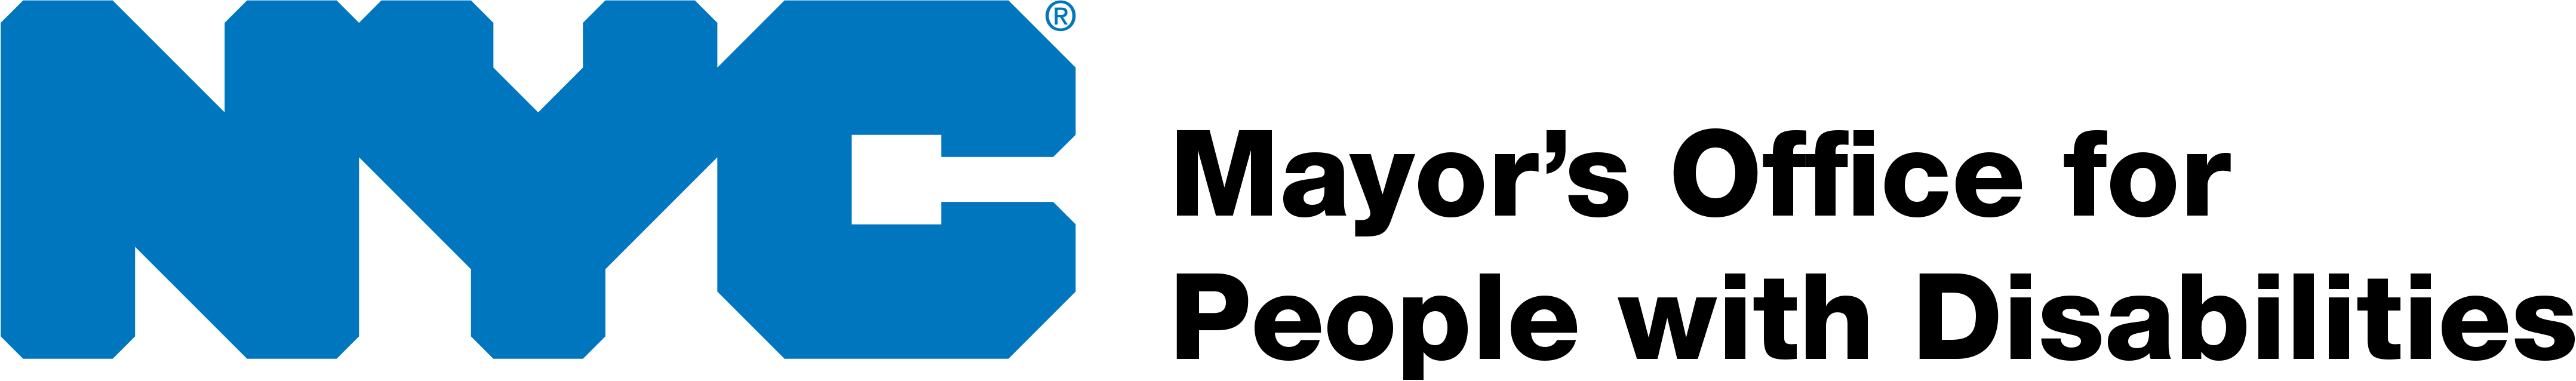 Mayor's Office for People with Disabilities logo